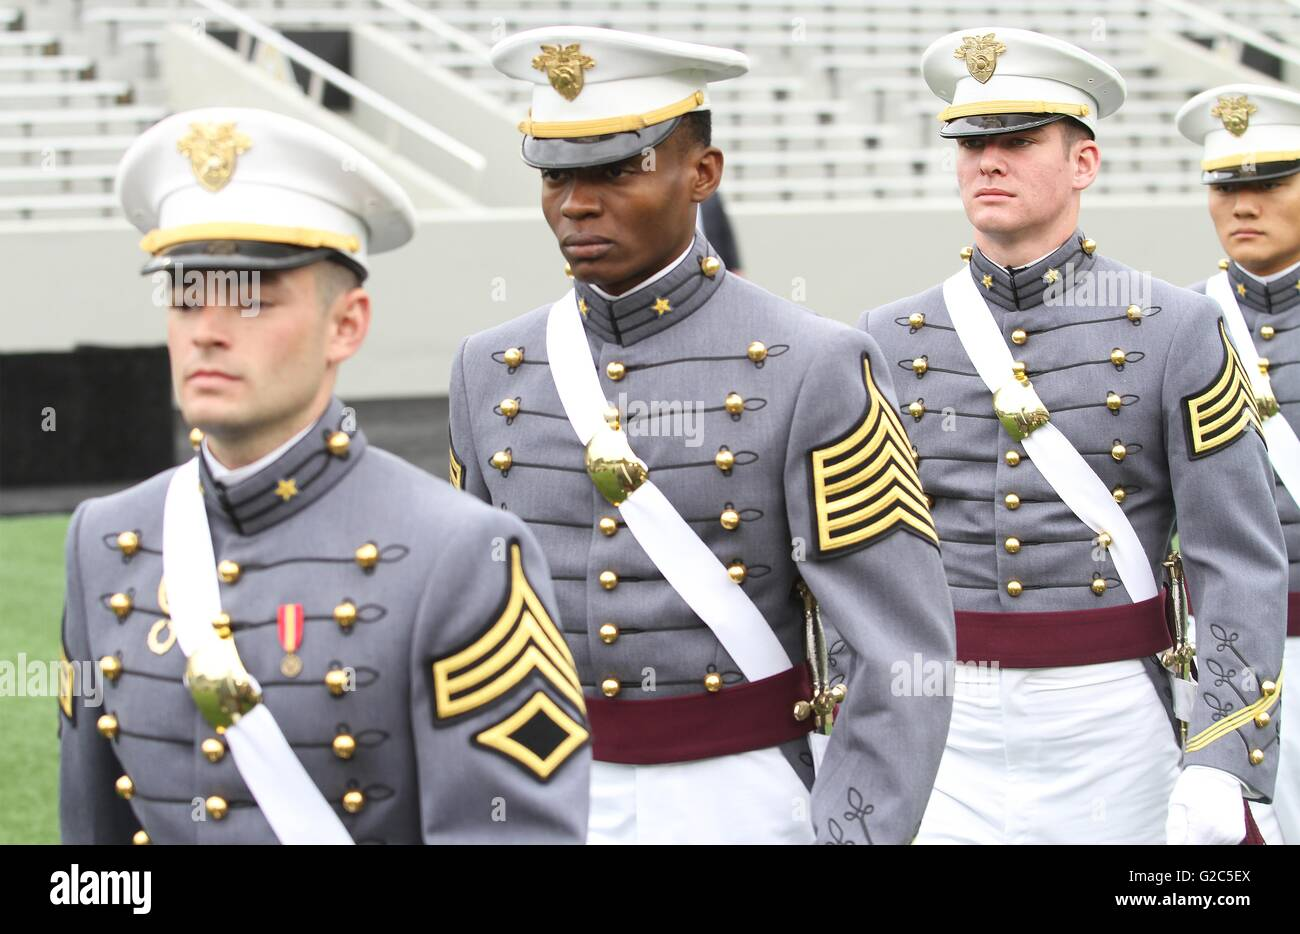 West Point Cadet Alix Idrache, center, during the 2016 commencement ceremony at the West Point Military Academy - Stock Image